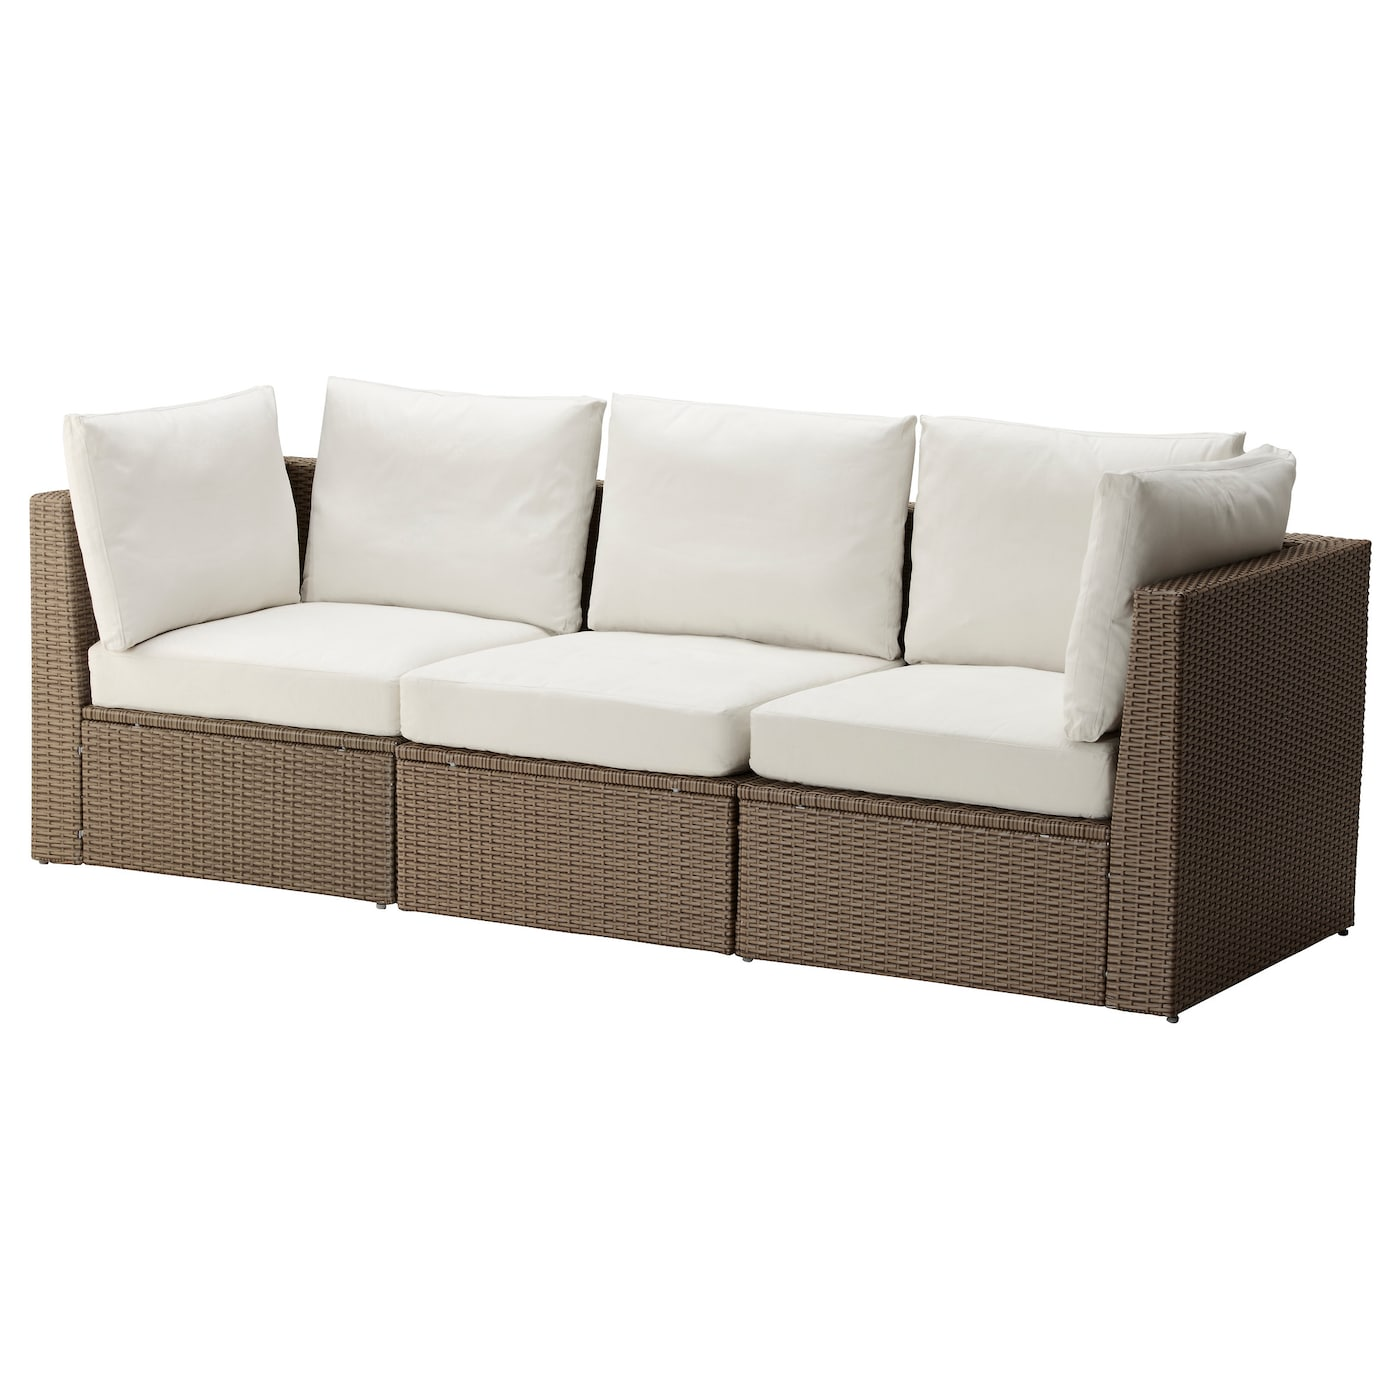 Arholma 3 seat sofa outdoor brown beige 217x76x66 cm ikea for Sofa rinconera exterior